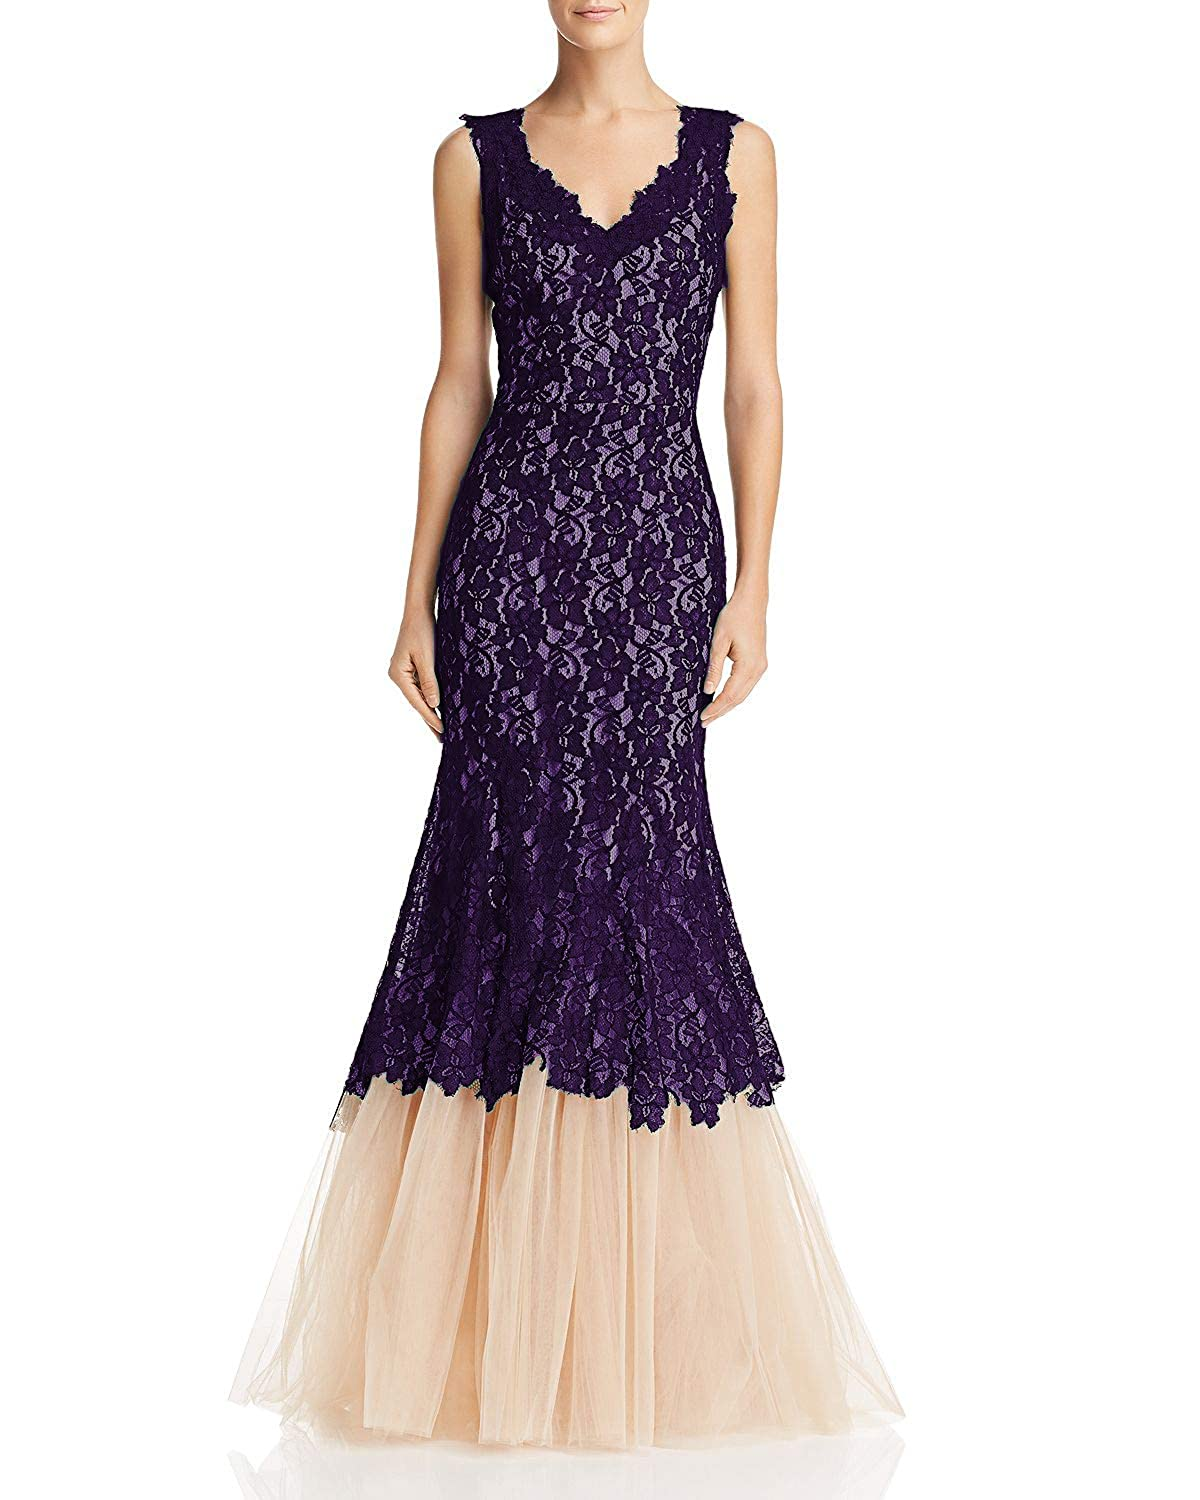 bluee Wanshaqin Women's Mesh Lace Appliqued Double V Neck Tulle Evening Gown for Cocktail Wedding Party